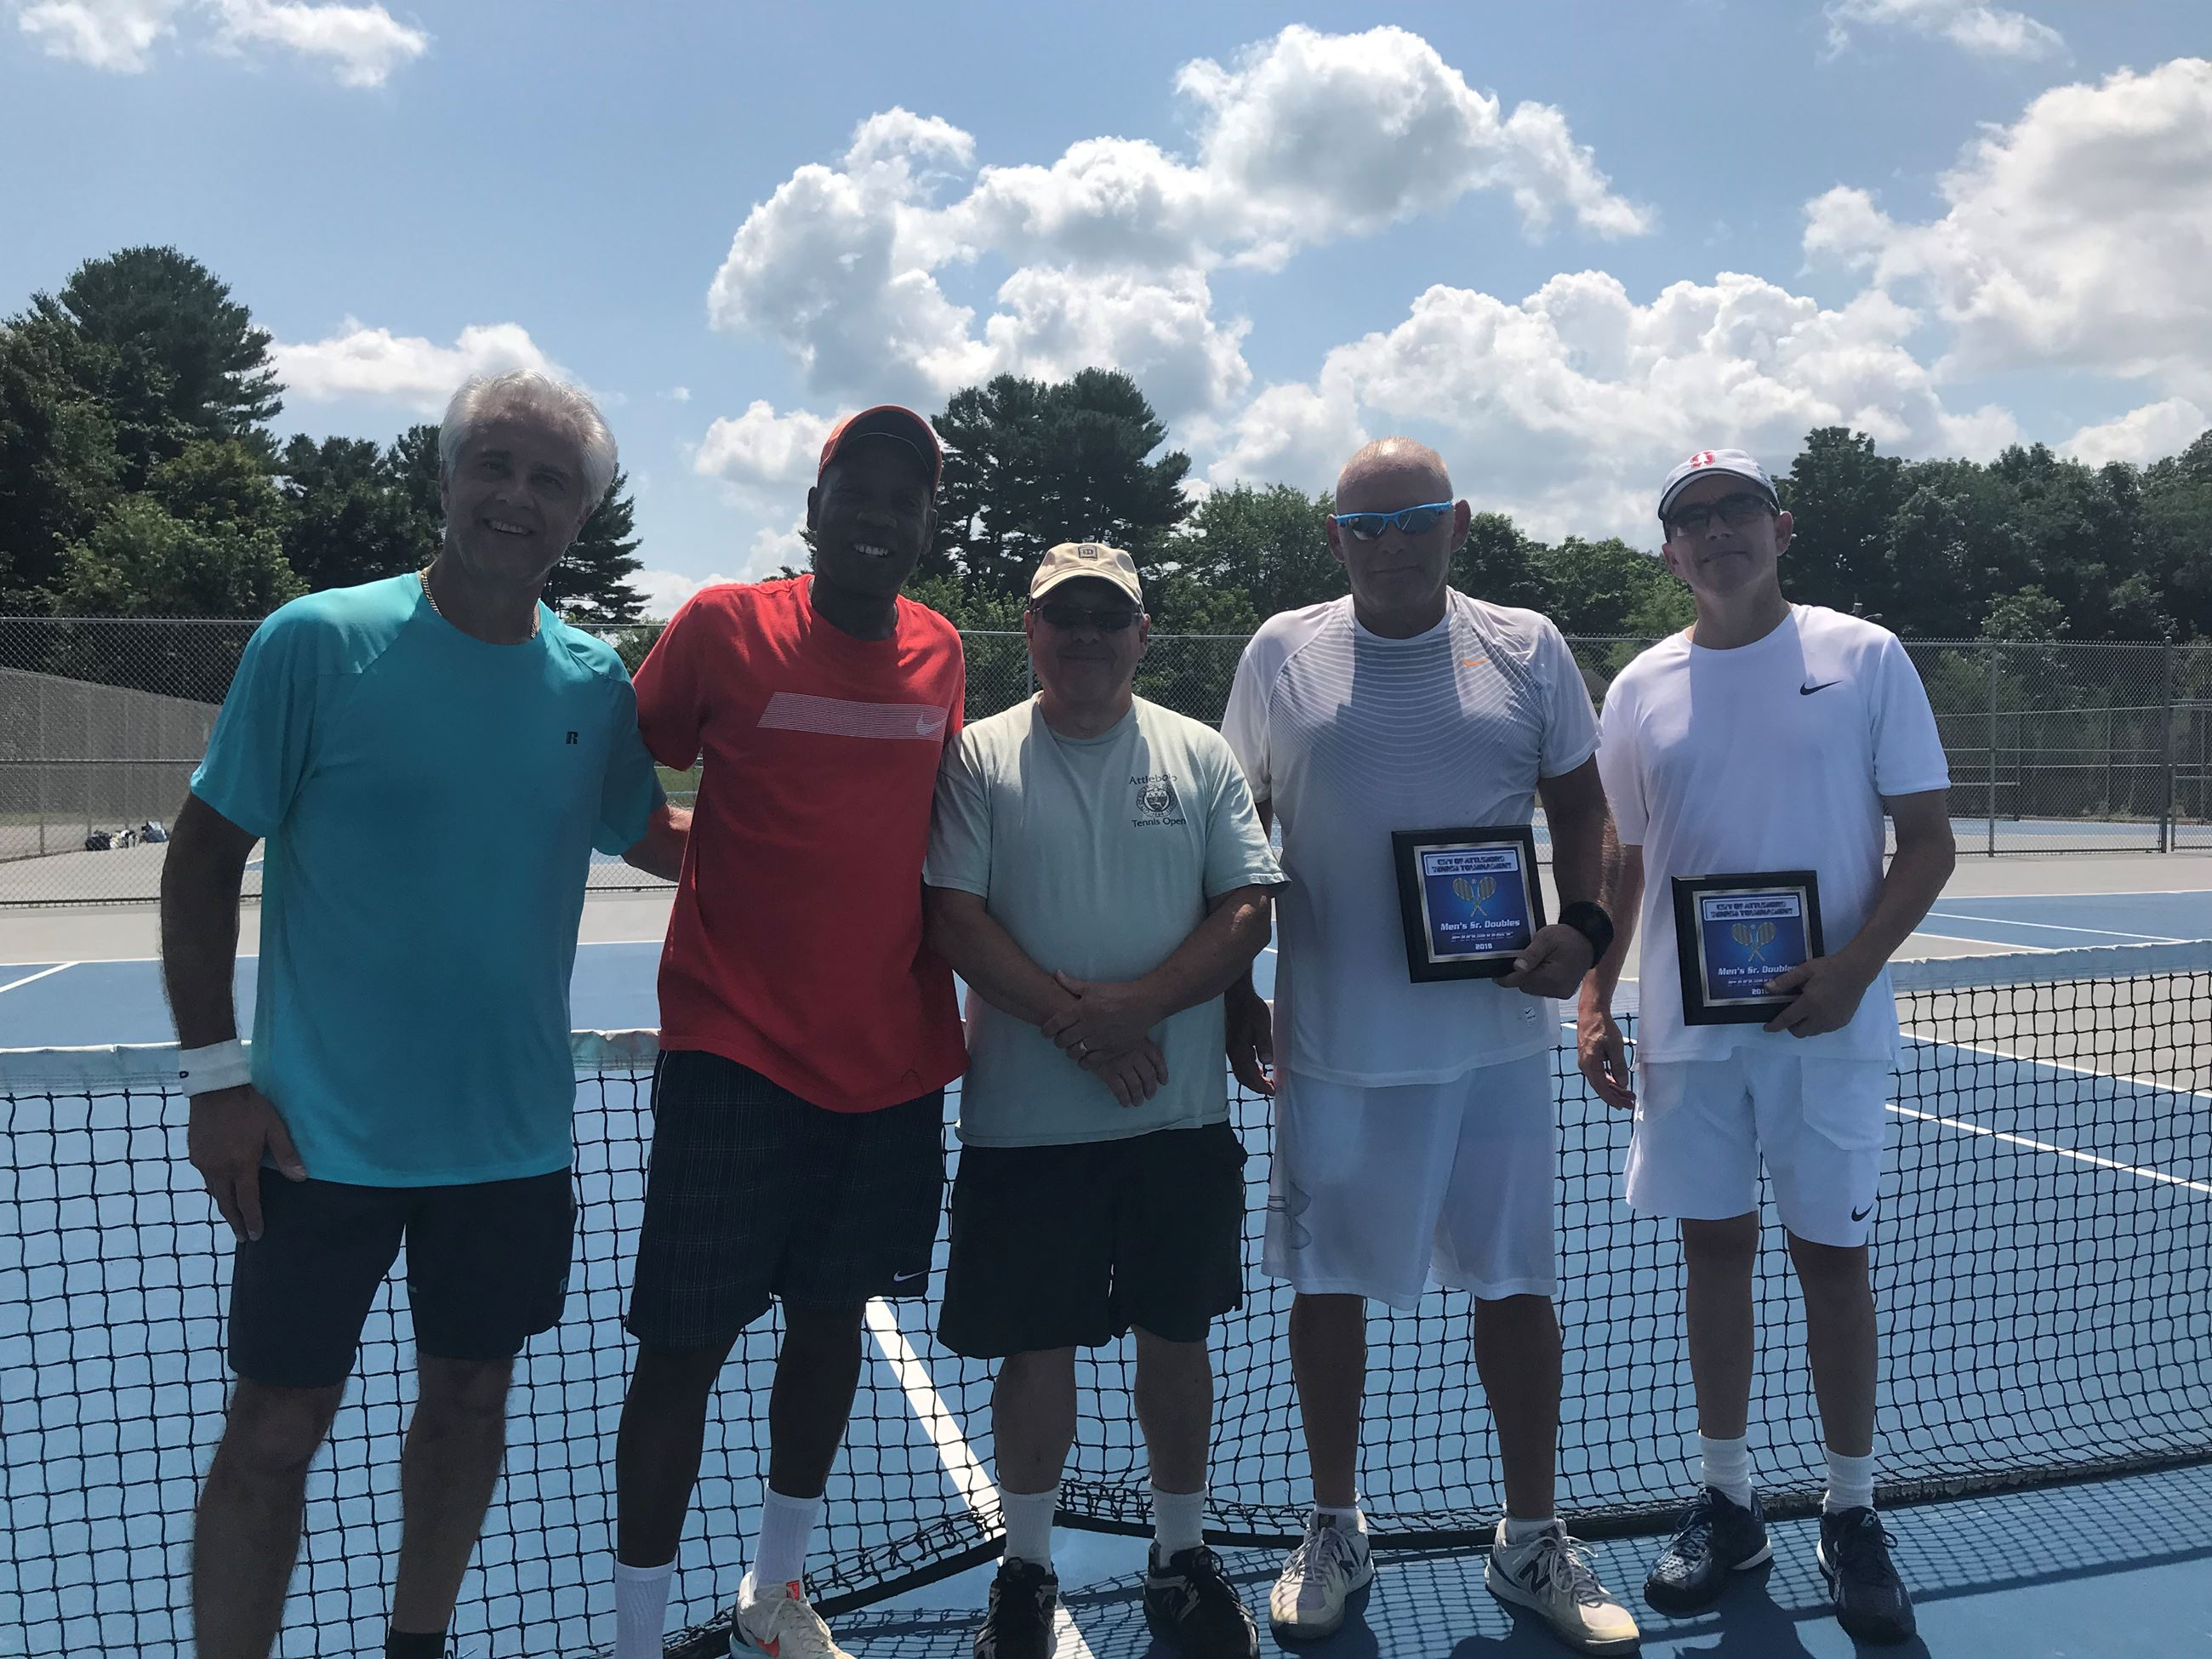 2018 Mens Sr Doubles - Champions Manny Pacheco and Manny Toppins  -  Tournament Director Paul Perry